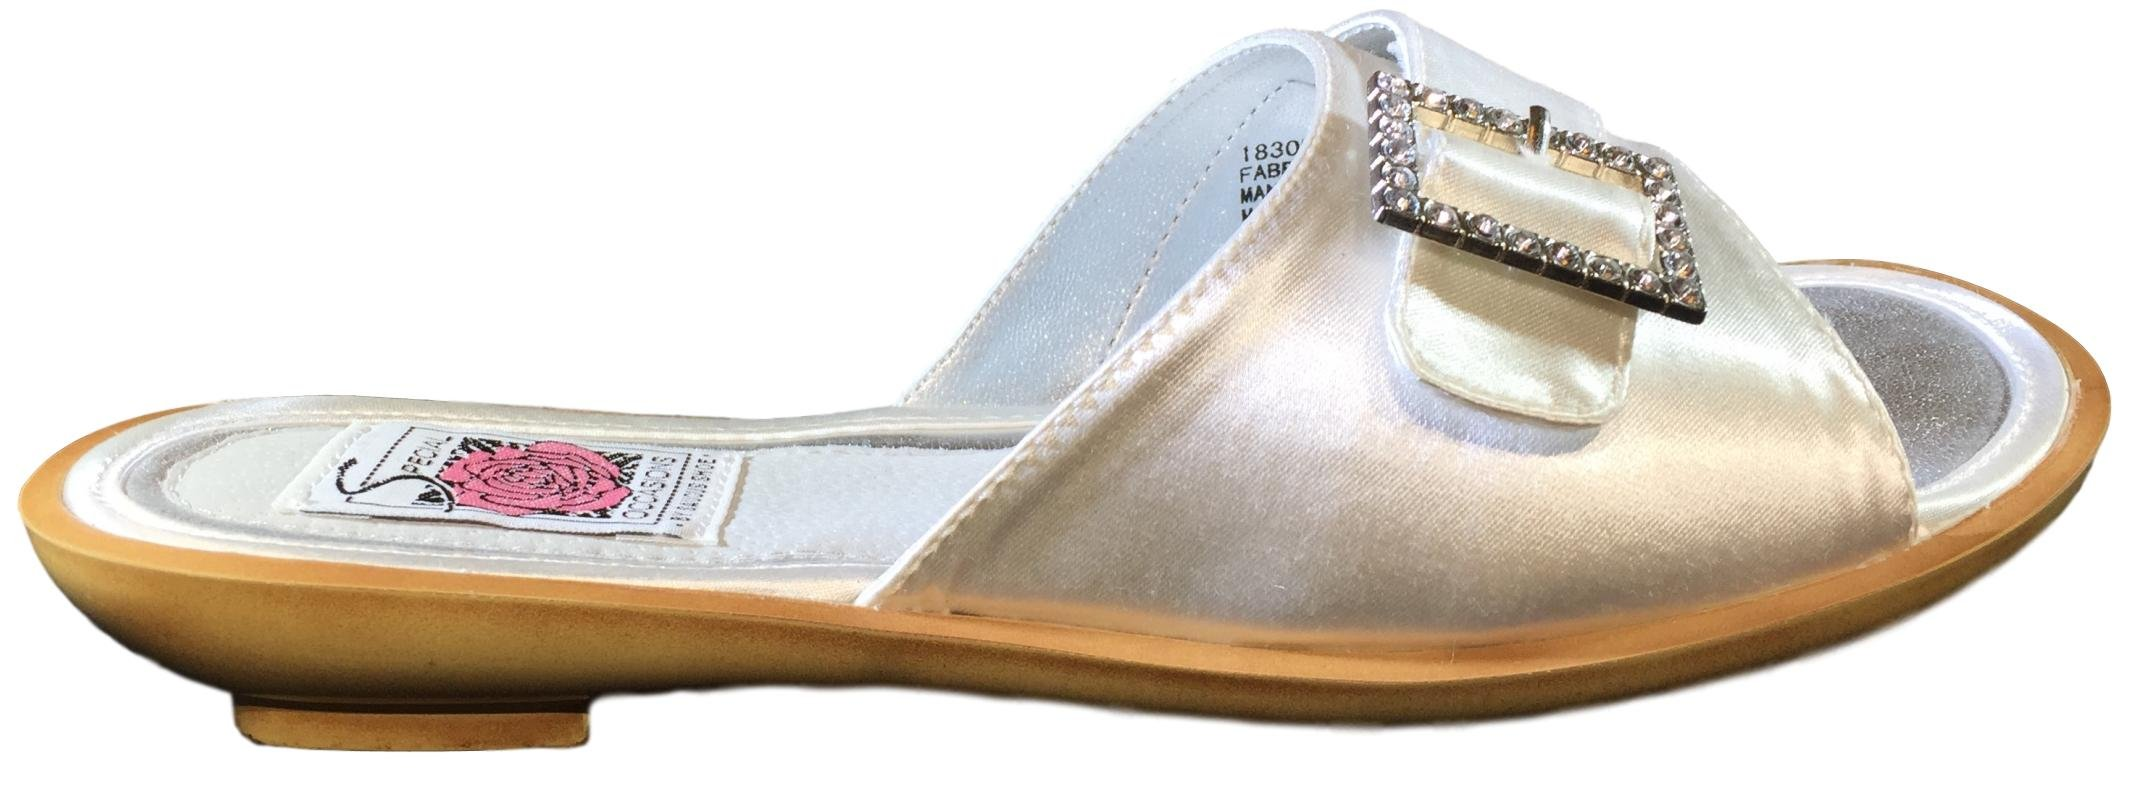 Saugus Dress Slippers | Womens Dress up for Wedding Cocktail Beach Party |Special Occasions 1830 (9.5 M)